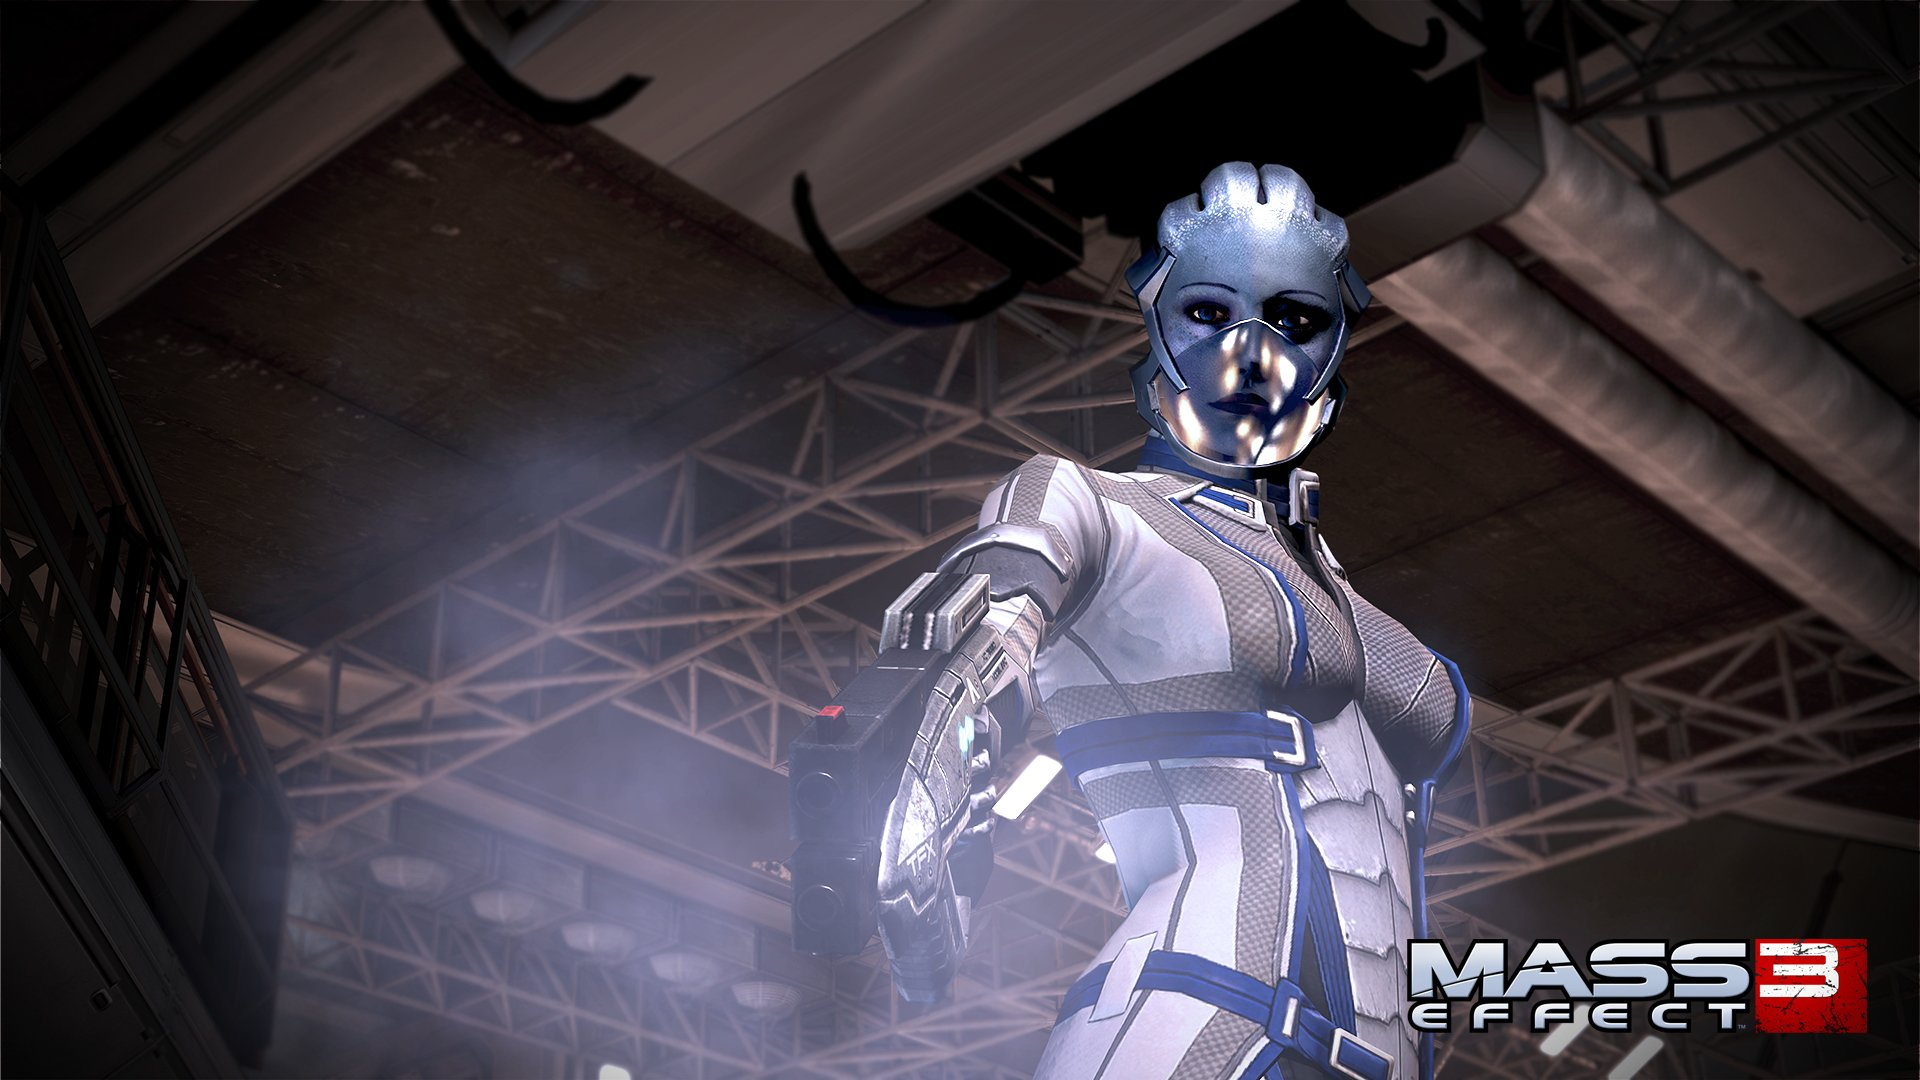 Xbox Live Marketplace Posts Mass Effect 3 Dlc Early Spoils Plot